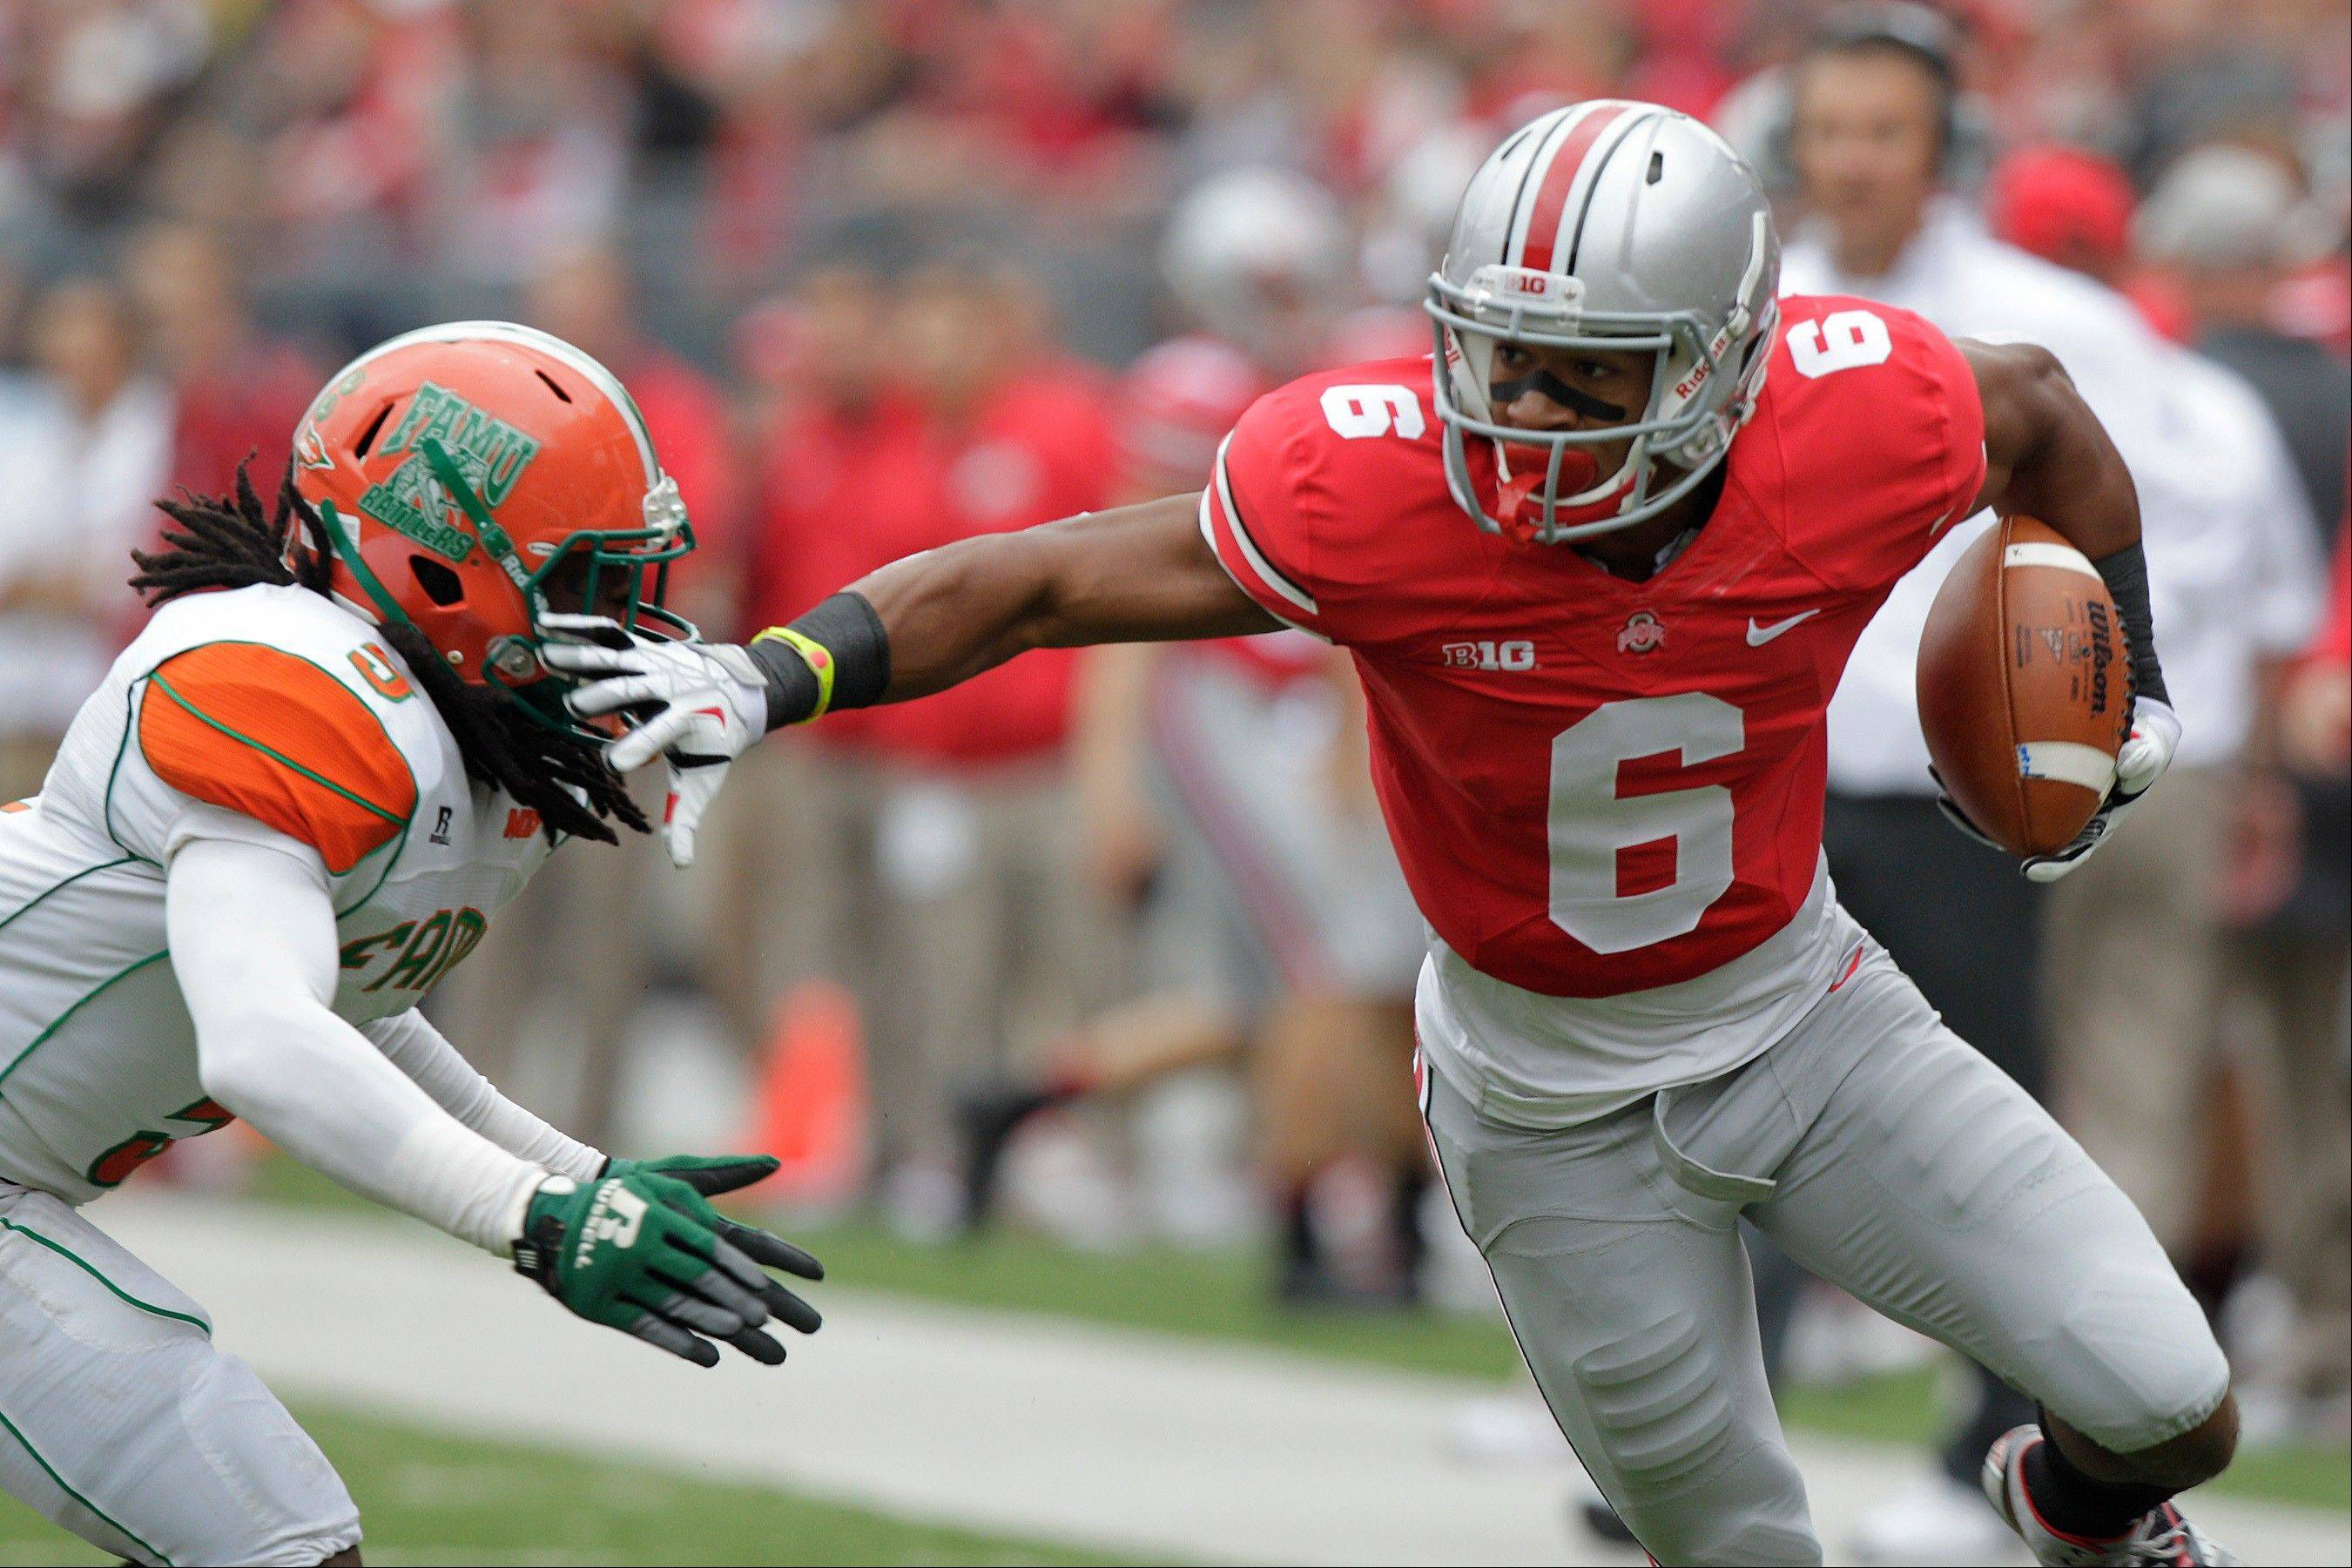 Ohio State wide receiver Evan Spencer thinks the No. 3 Buckeyes are better than No. 1 Alabama and No. 2 Florida State.